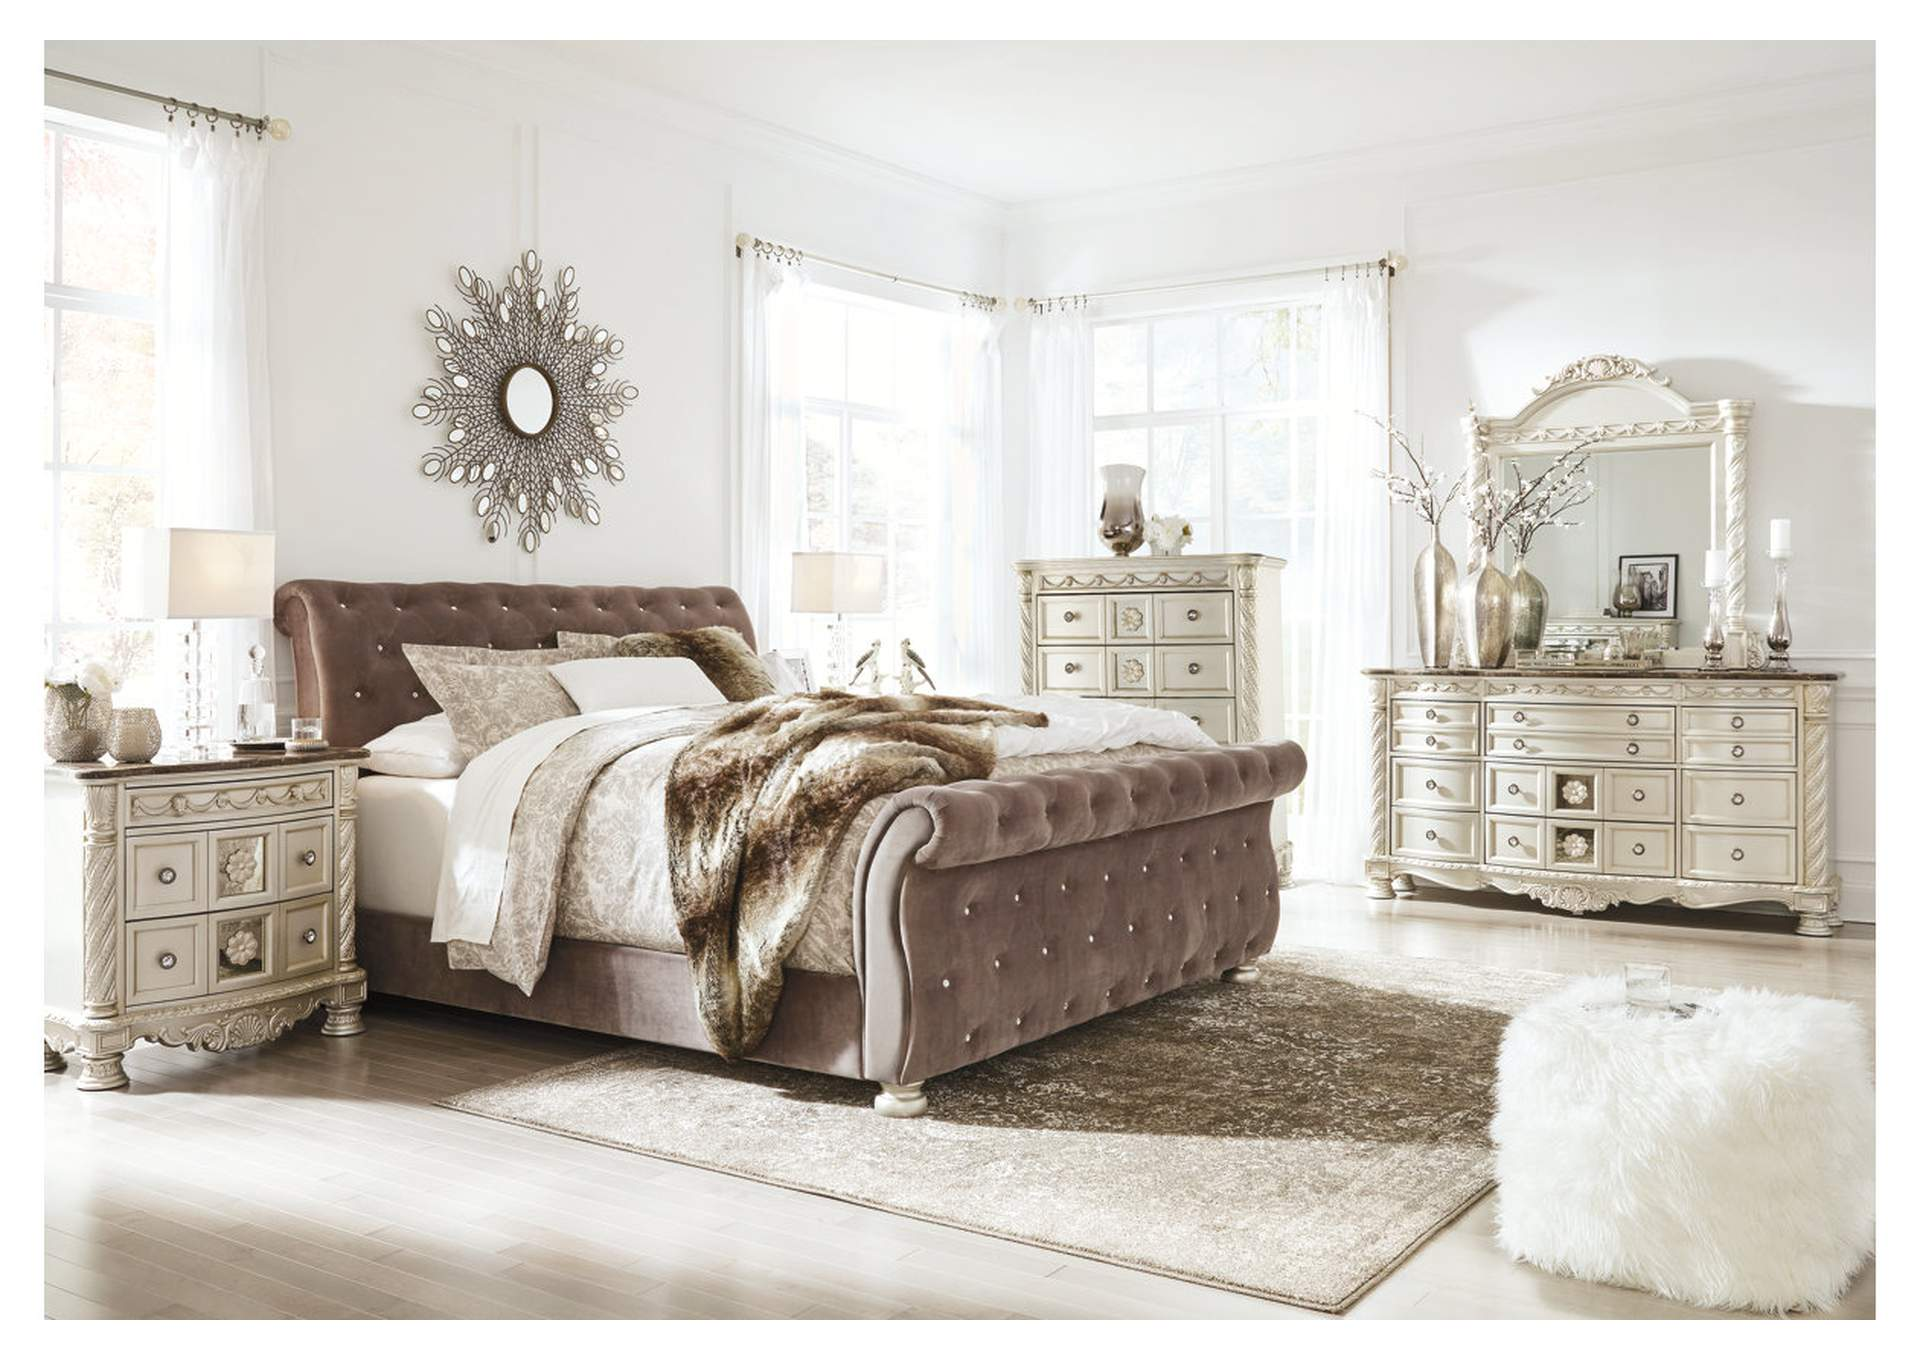 Cassimore Pearl Silver King Upholstered Bed w/Dresser, Mirror, Drawer Chest and Nightstand,Signature Design By Ashley